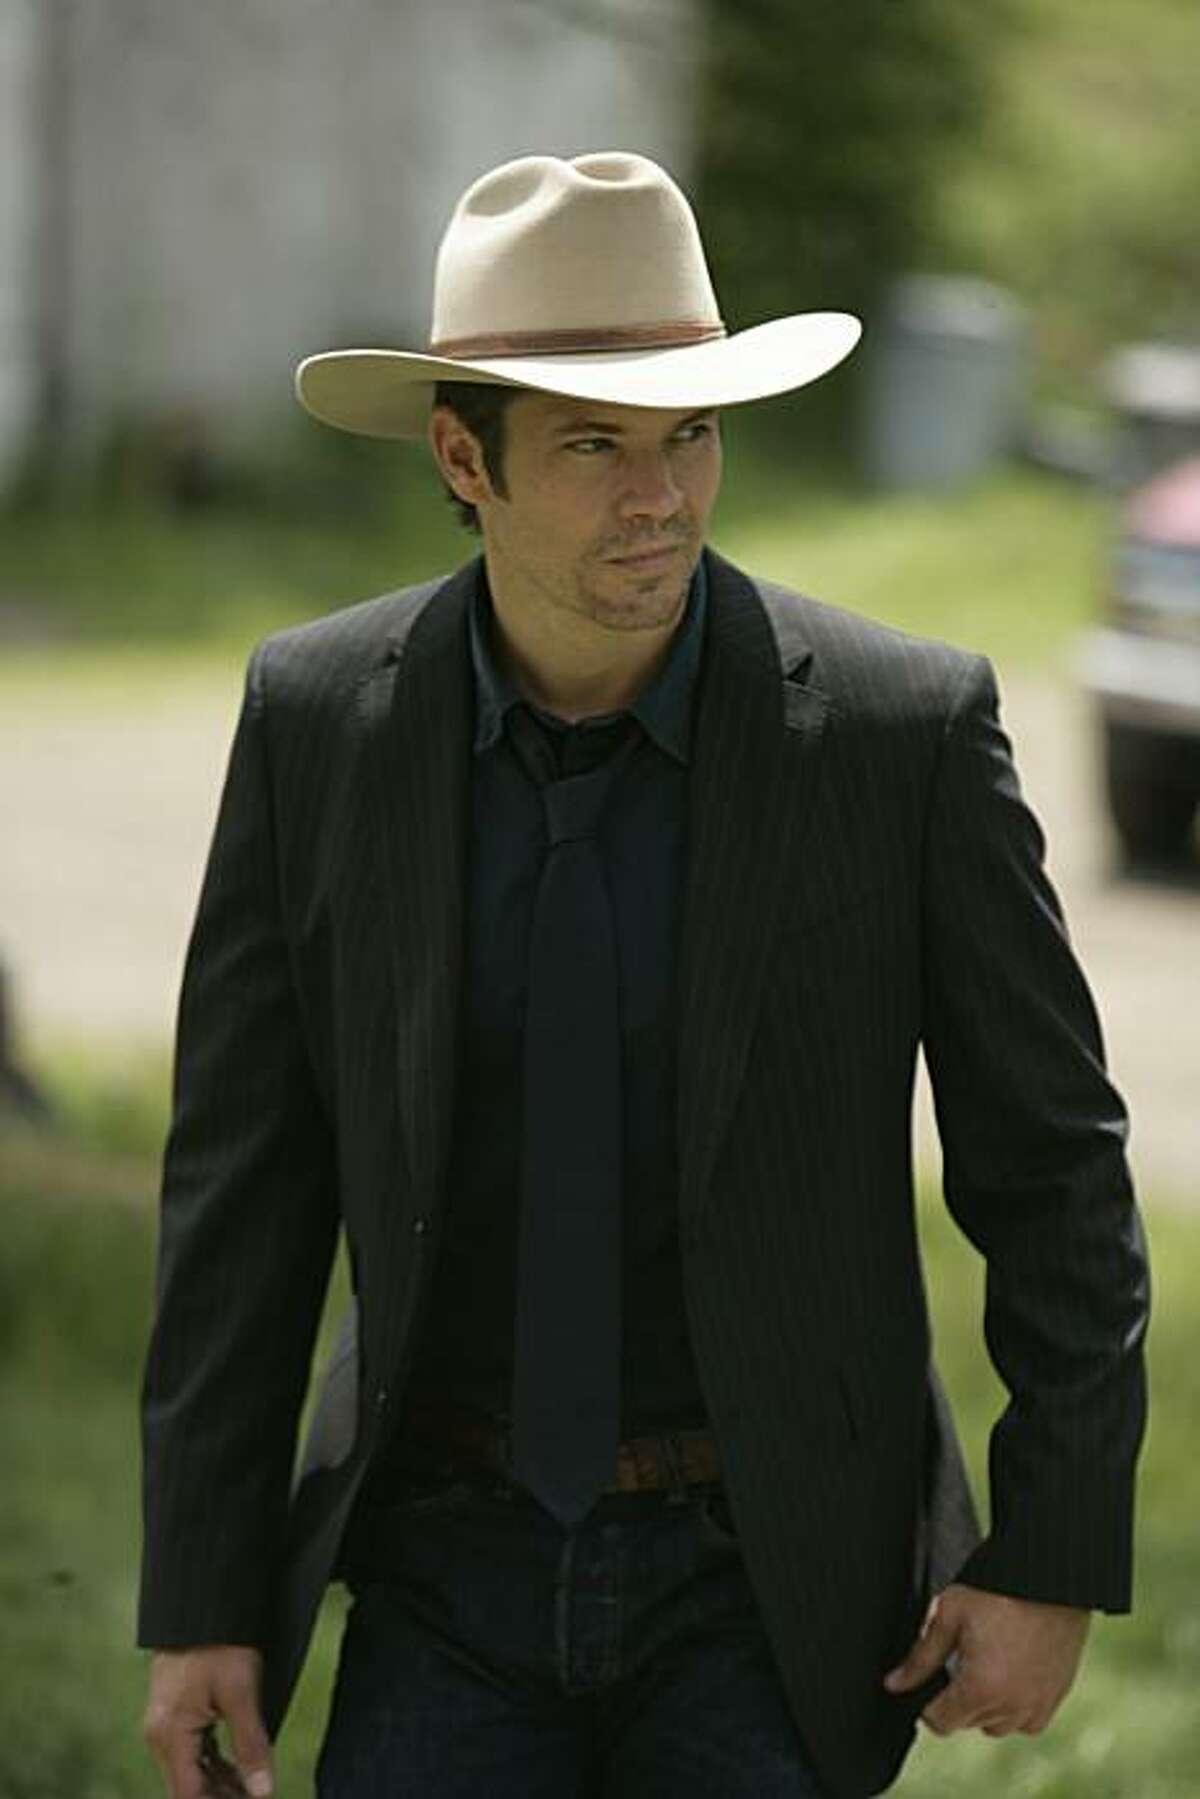 JUSTIFIED: Timothy Olyphant as Raylan Givens.